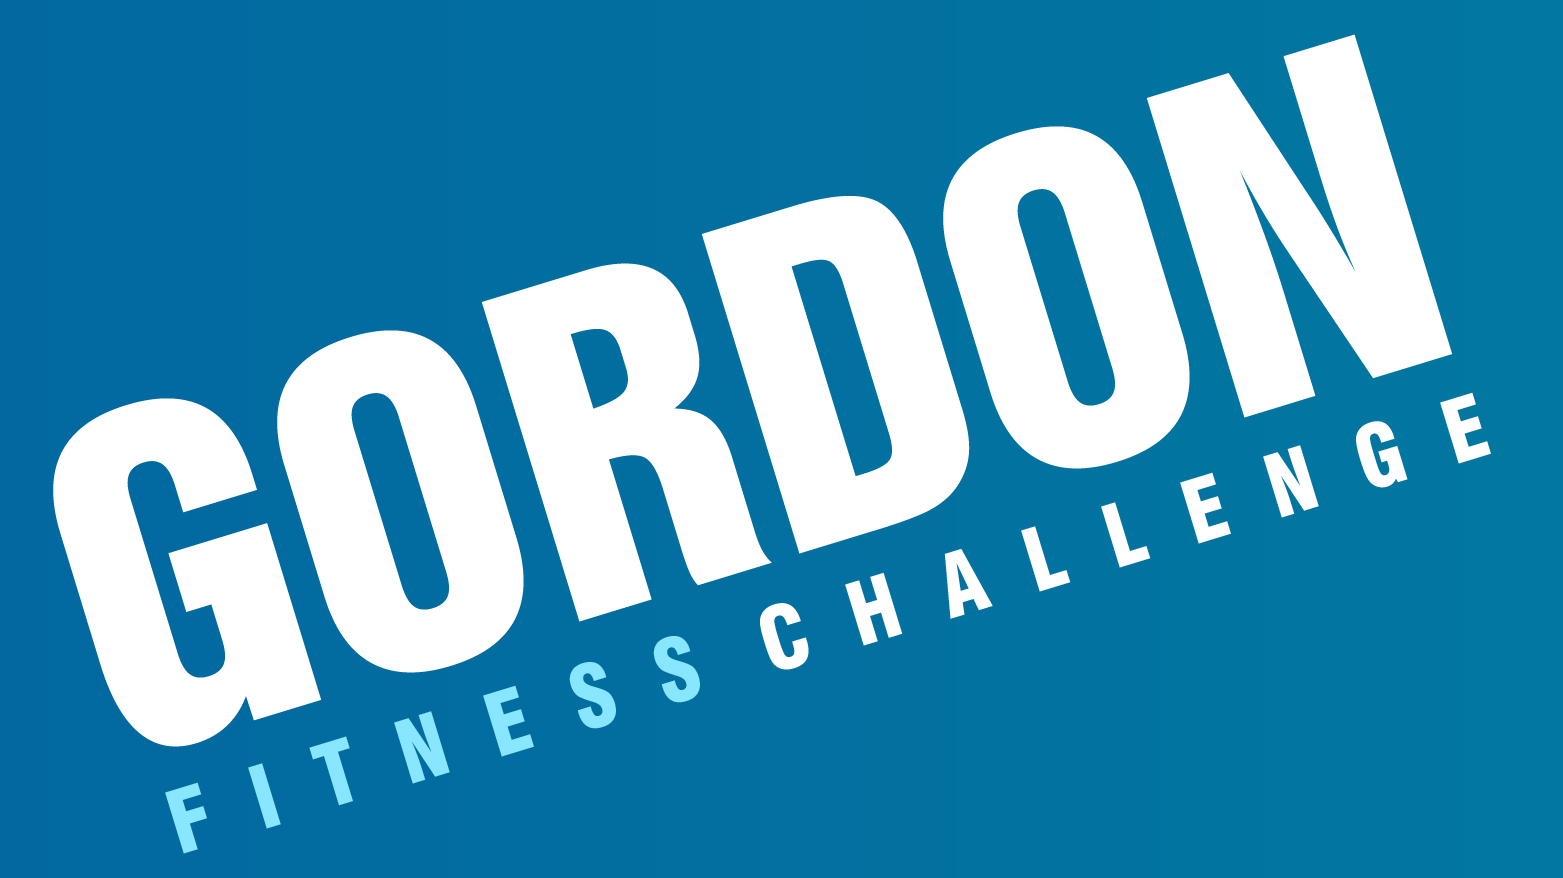 Gordon Fitness Challenge